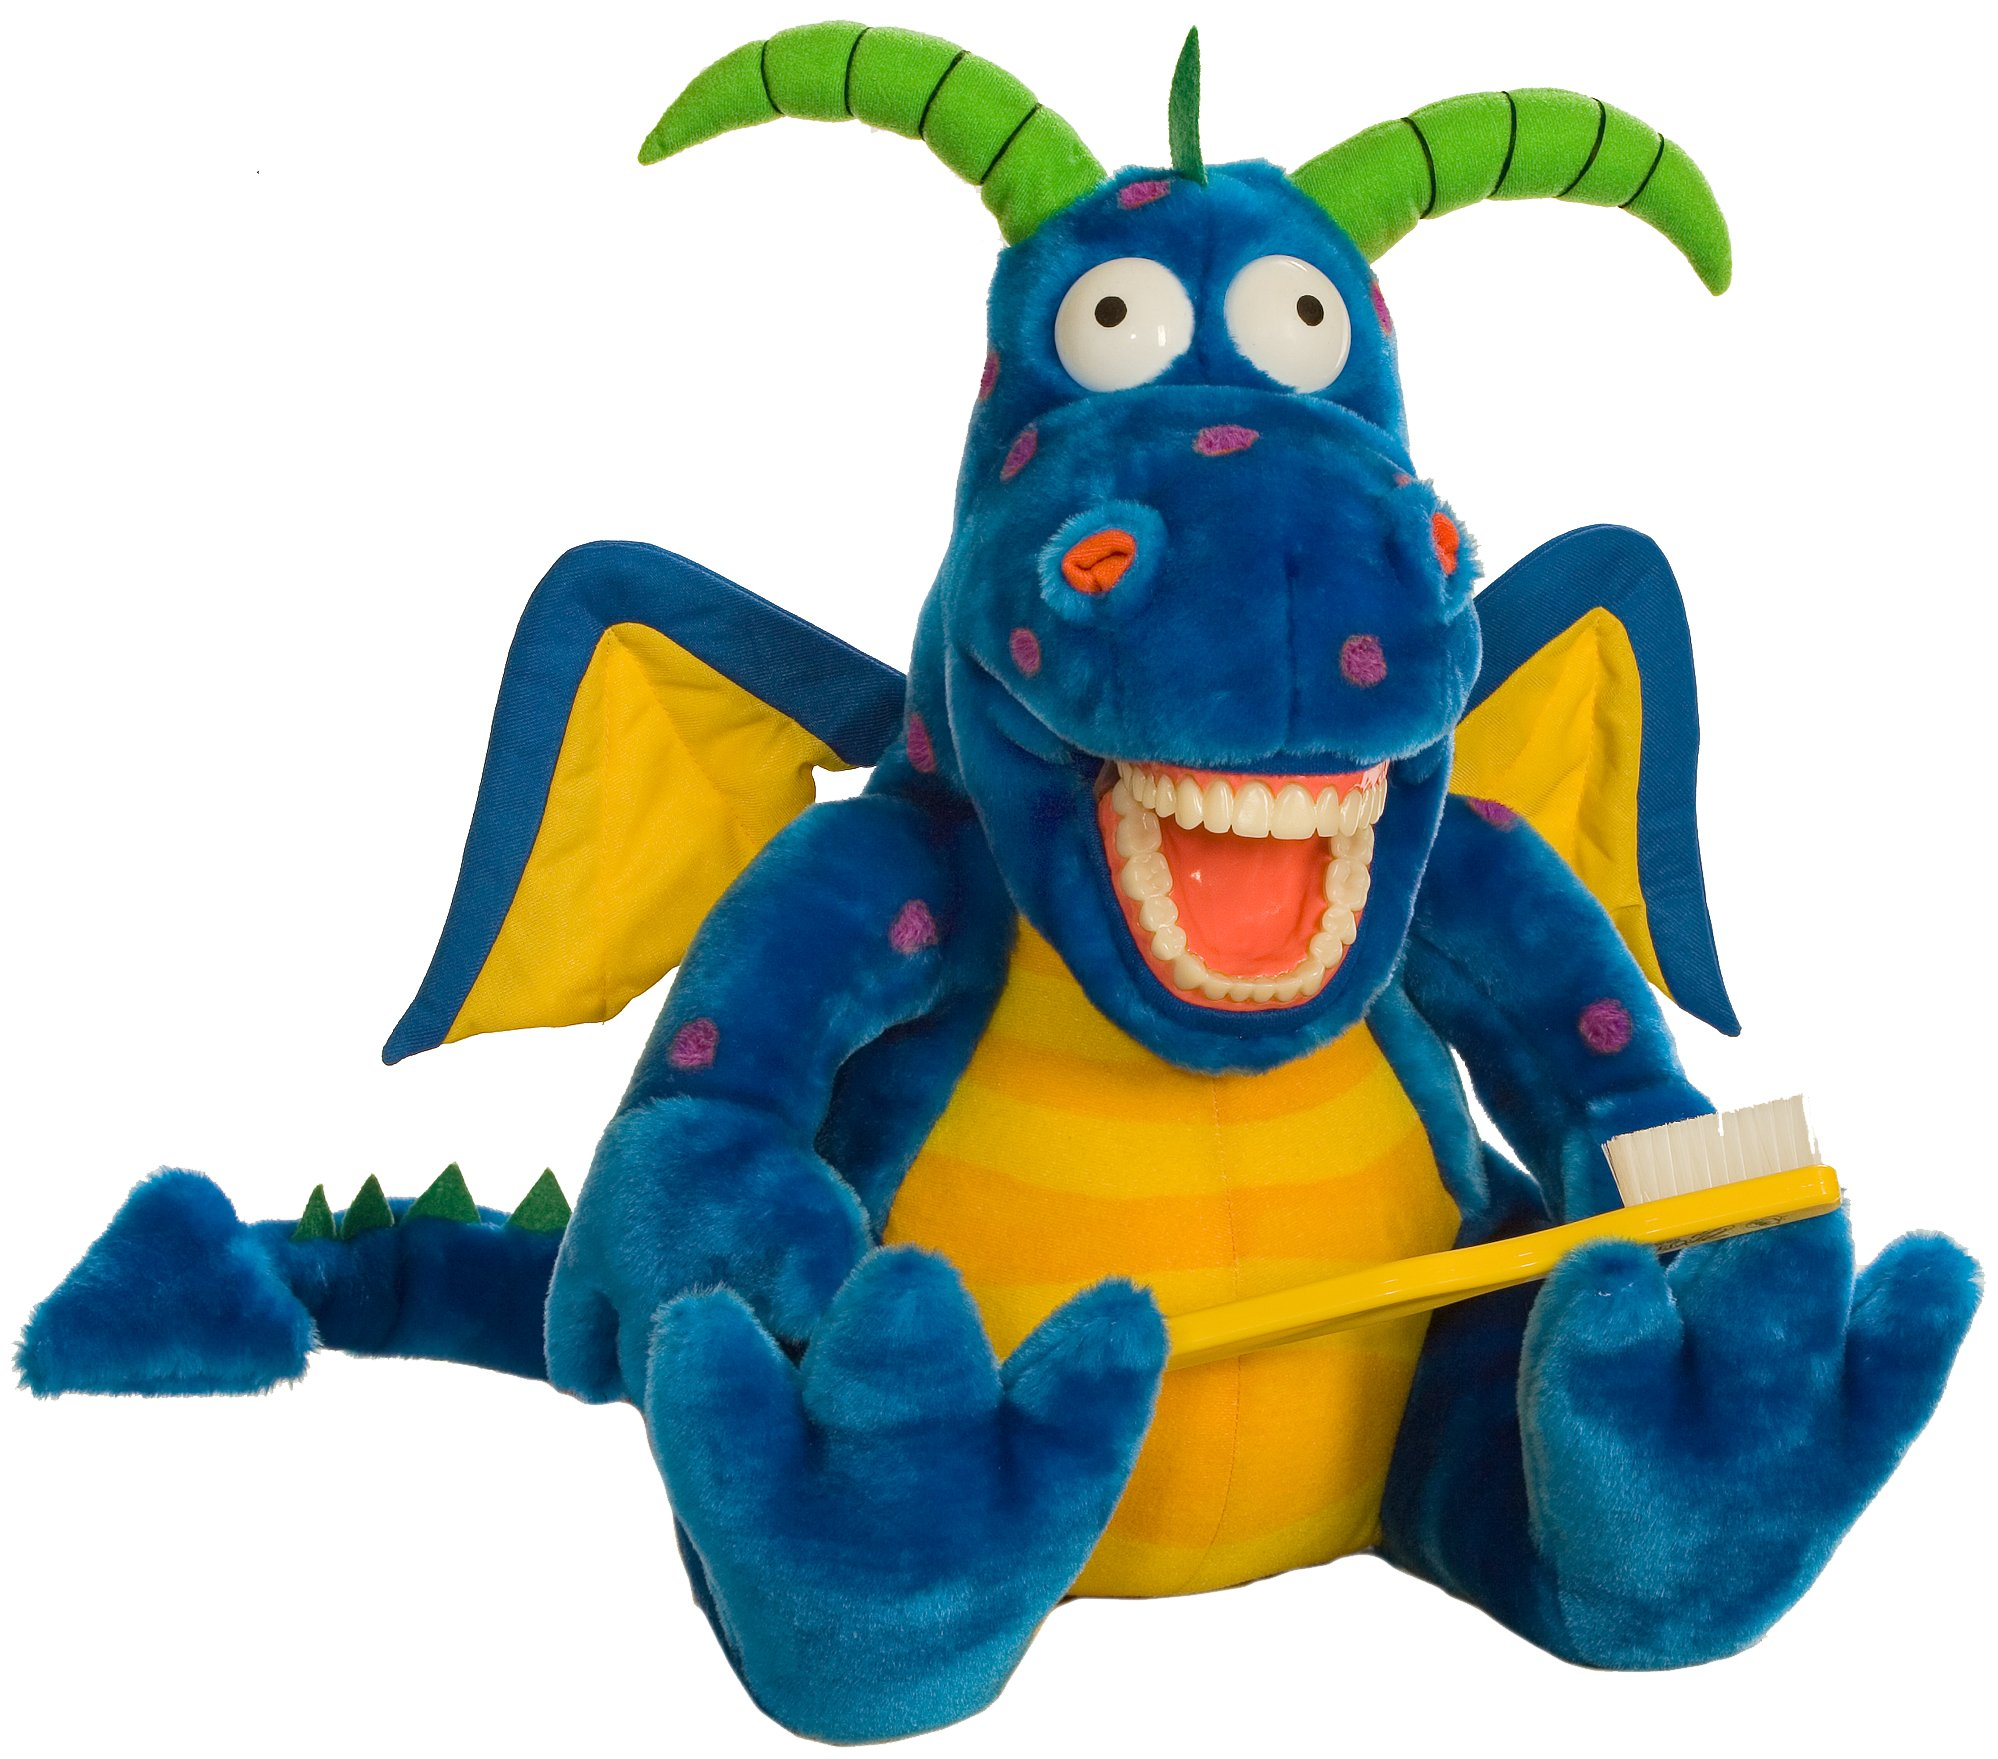 Oral Health Presentation Puppet Magi Dragon Educational Plush